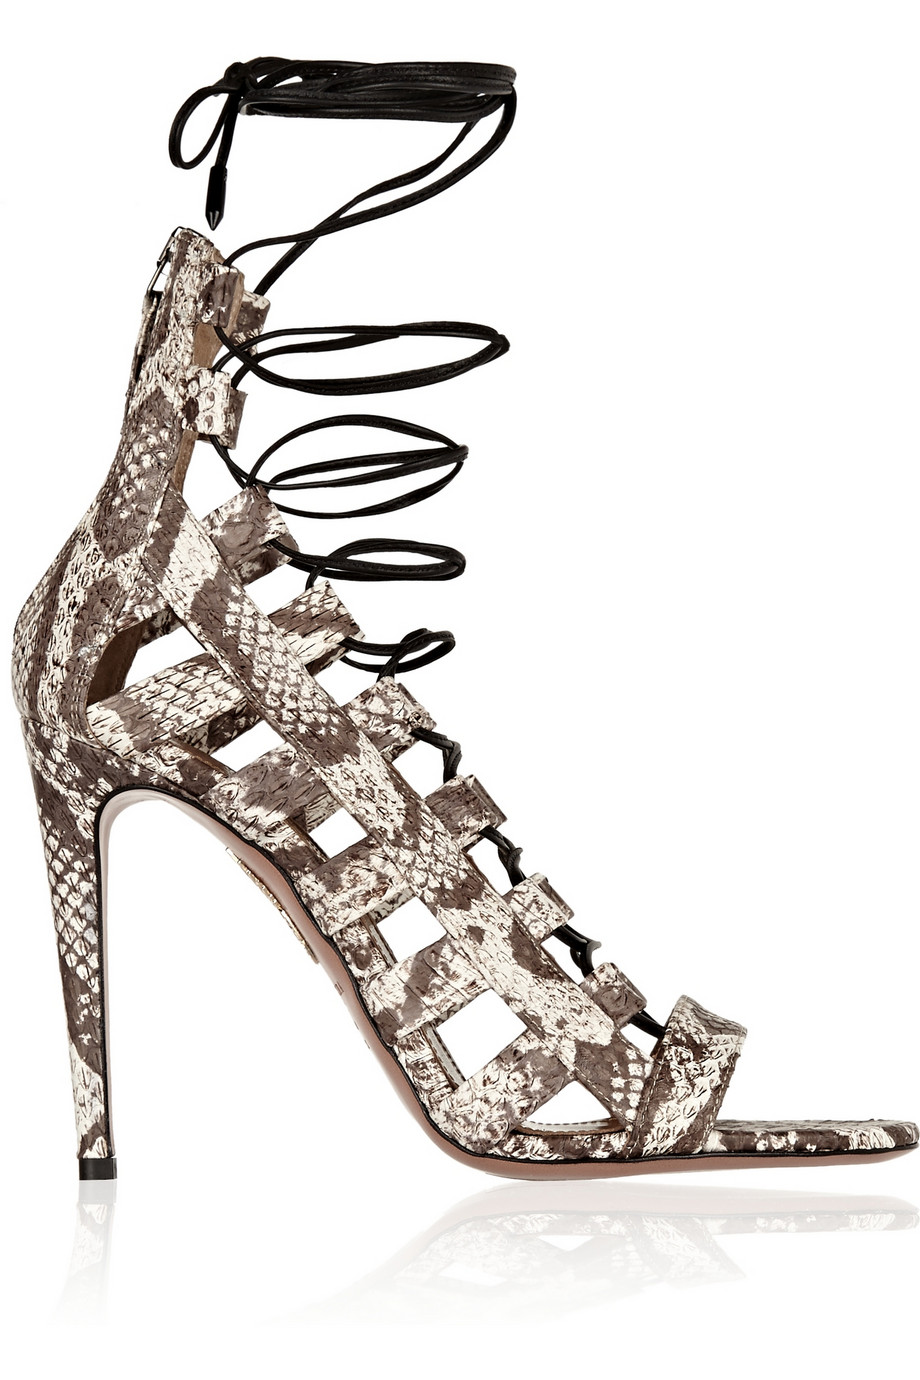 free shipping browse Aquazzura Amazon Python Cage Sandals clearance choice ompFsors